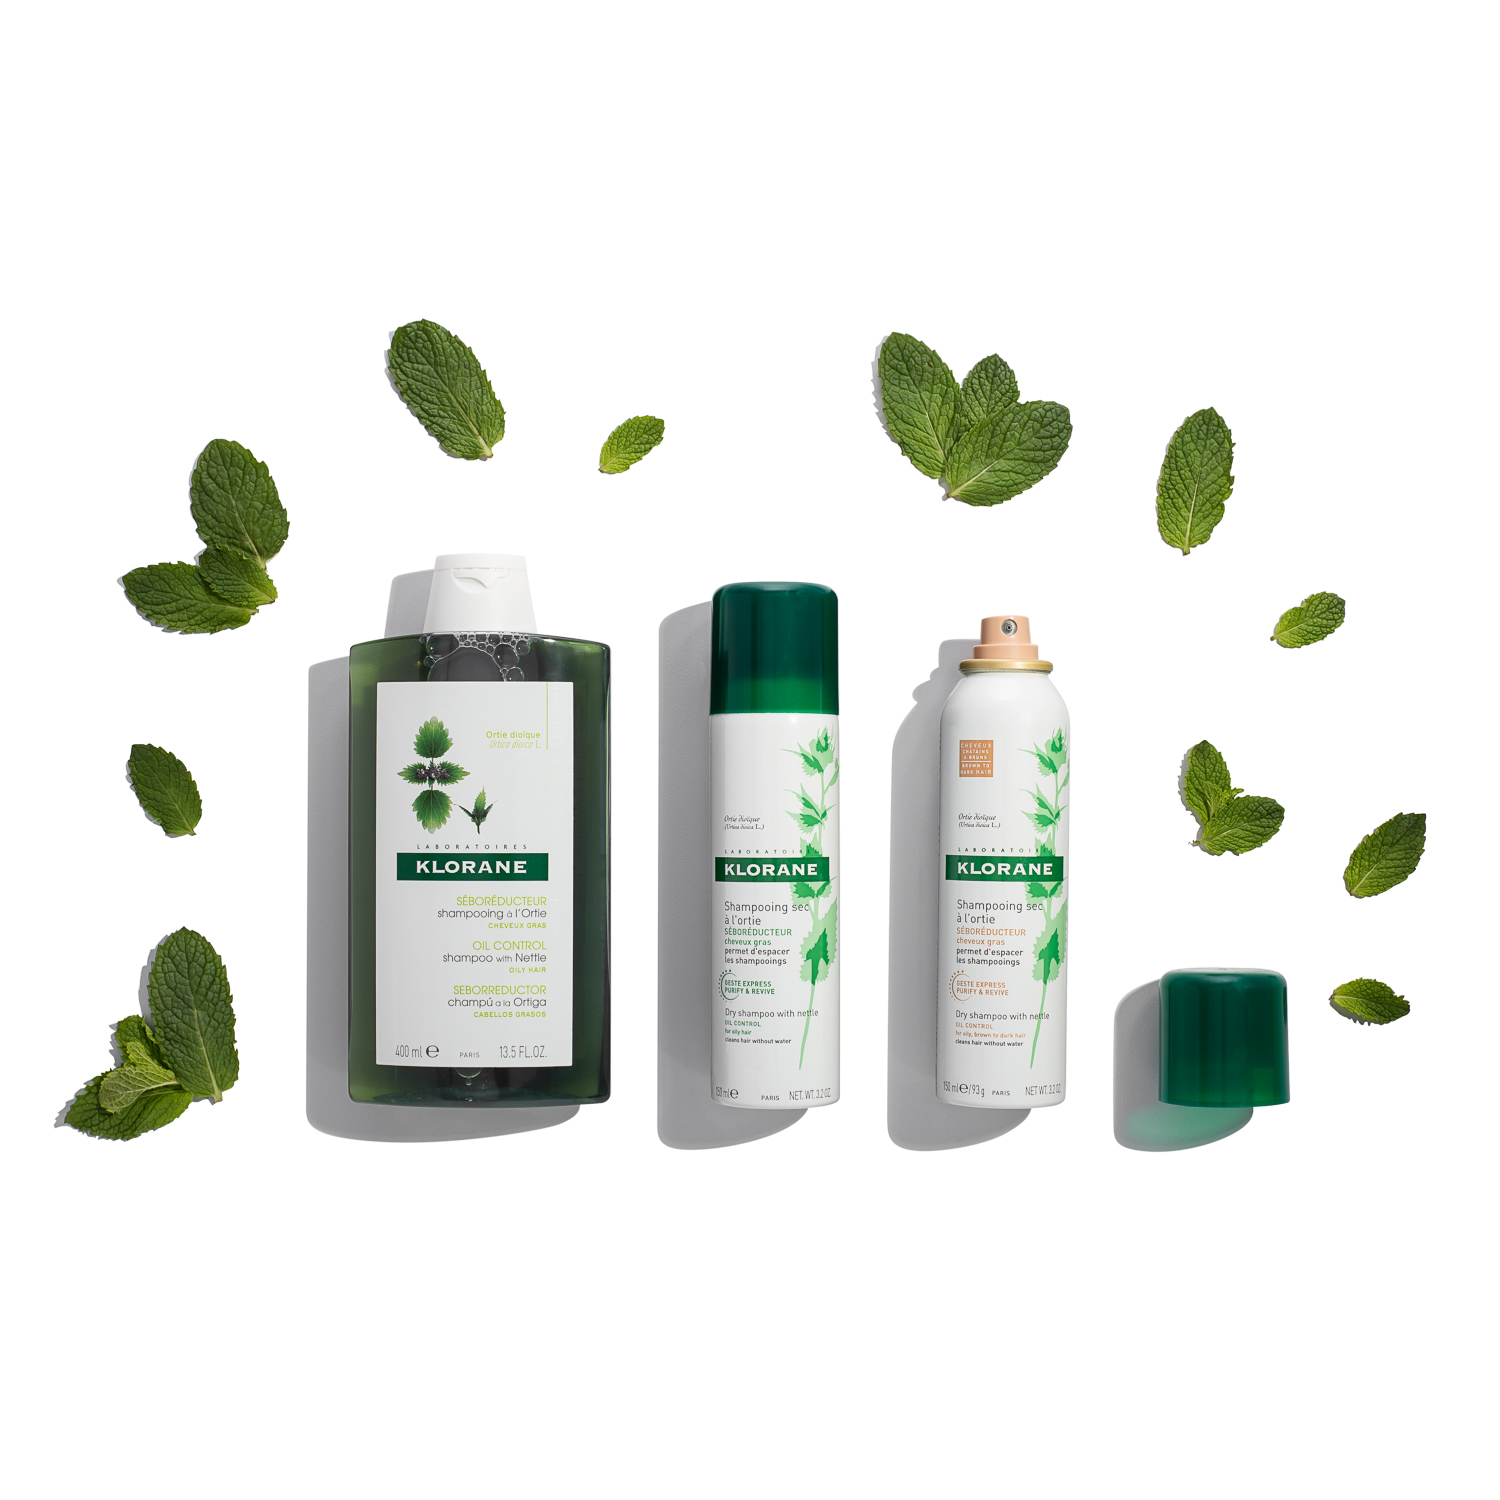 Styling these products with the fresh leaves gives a clean, fresh look to the photo!